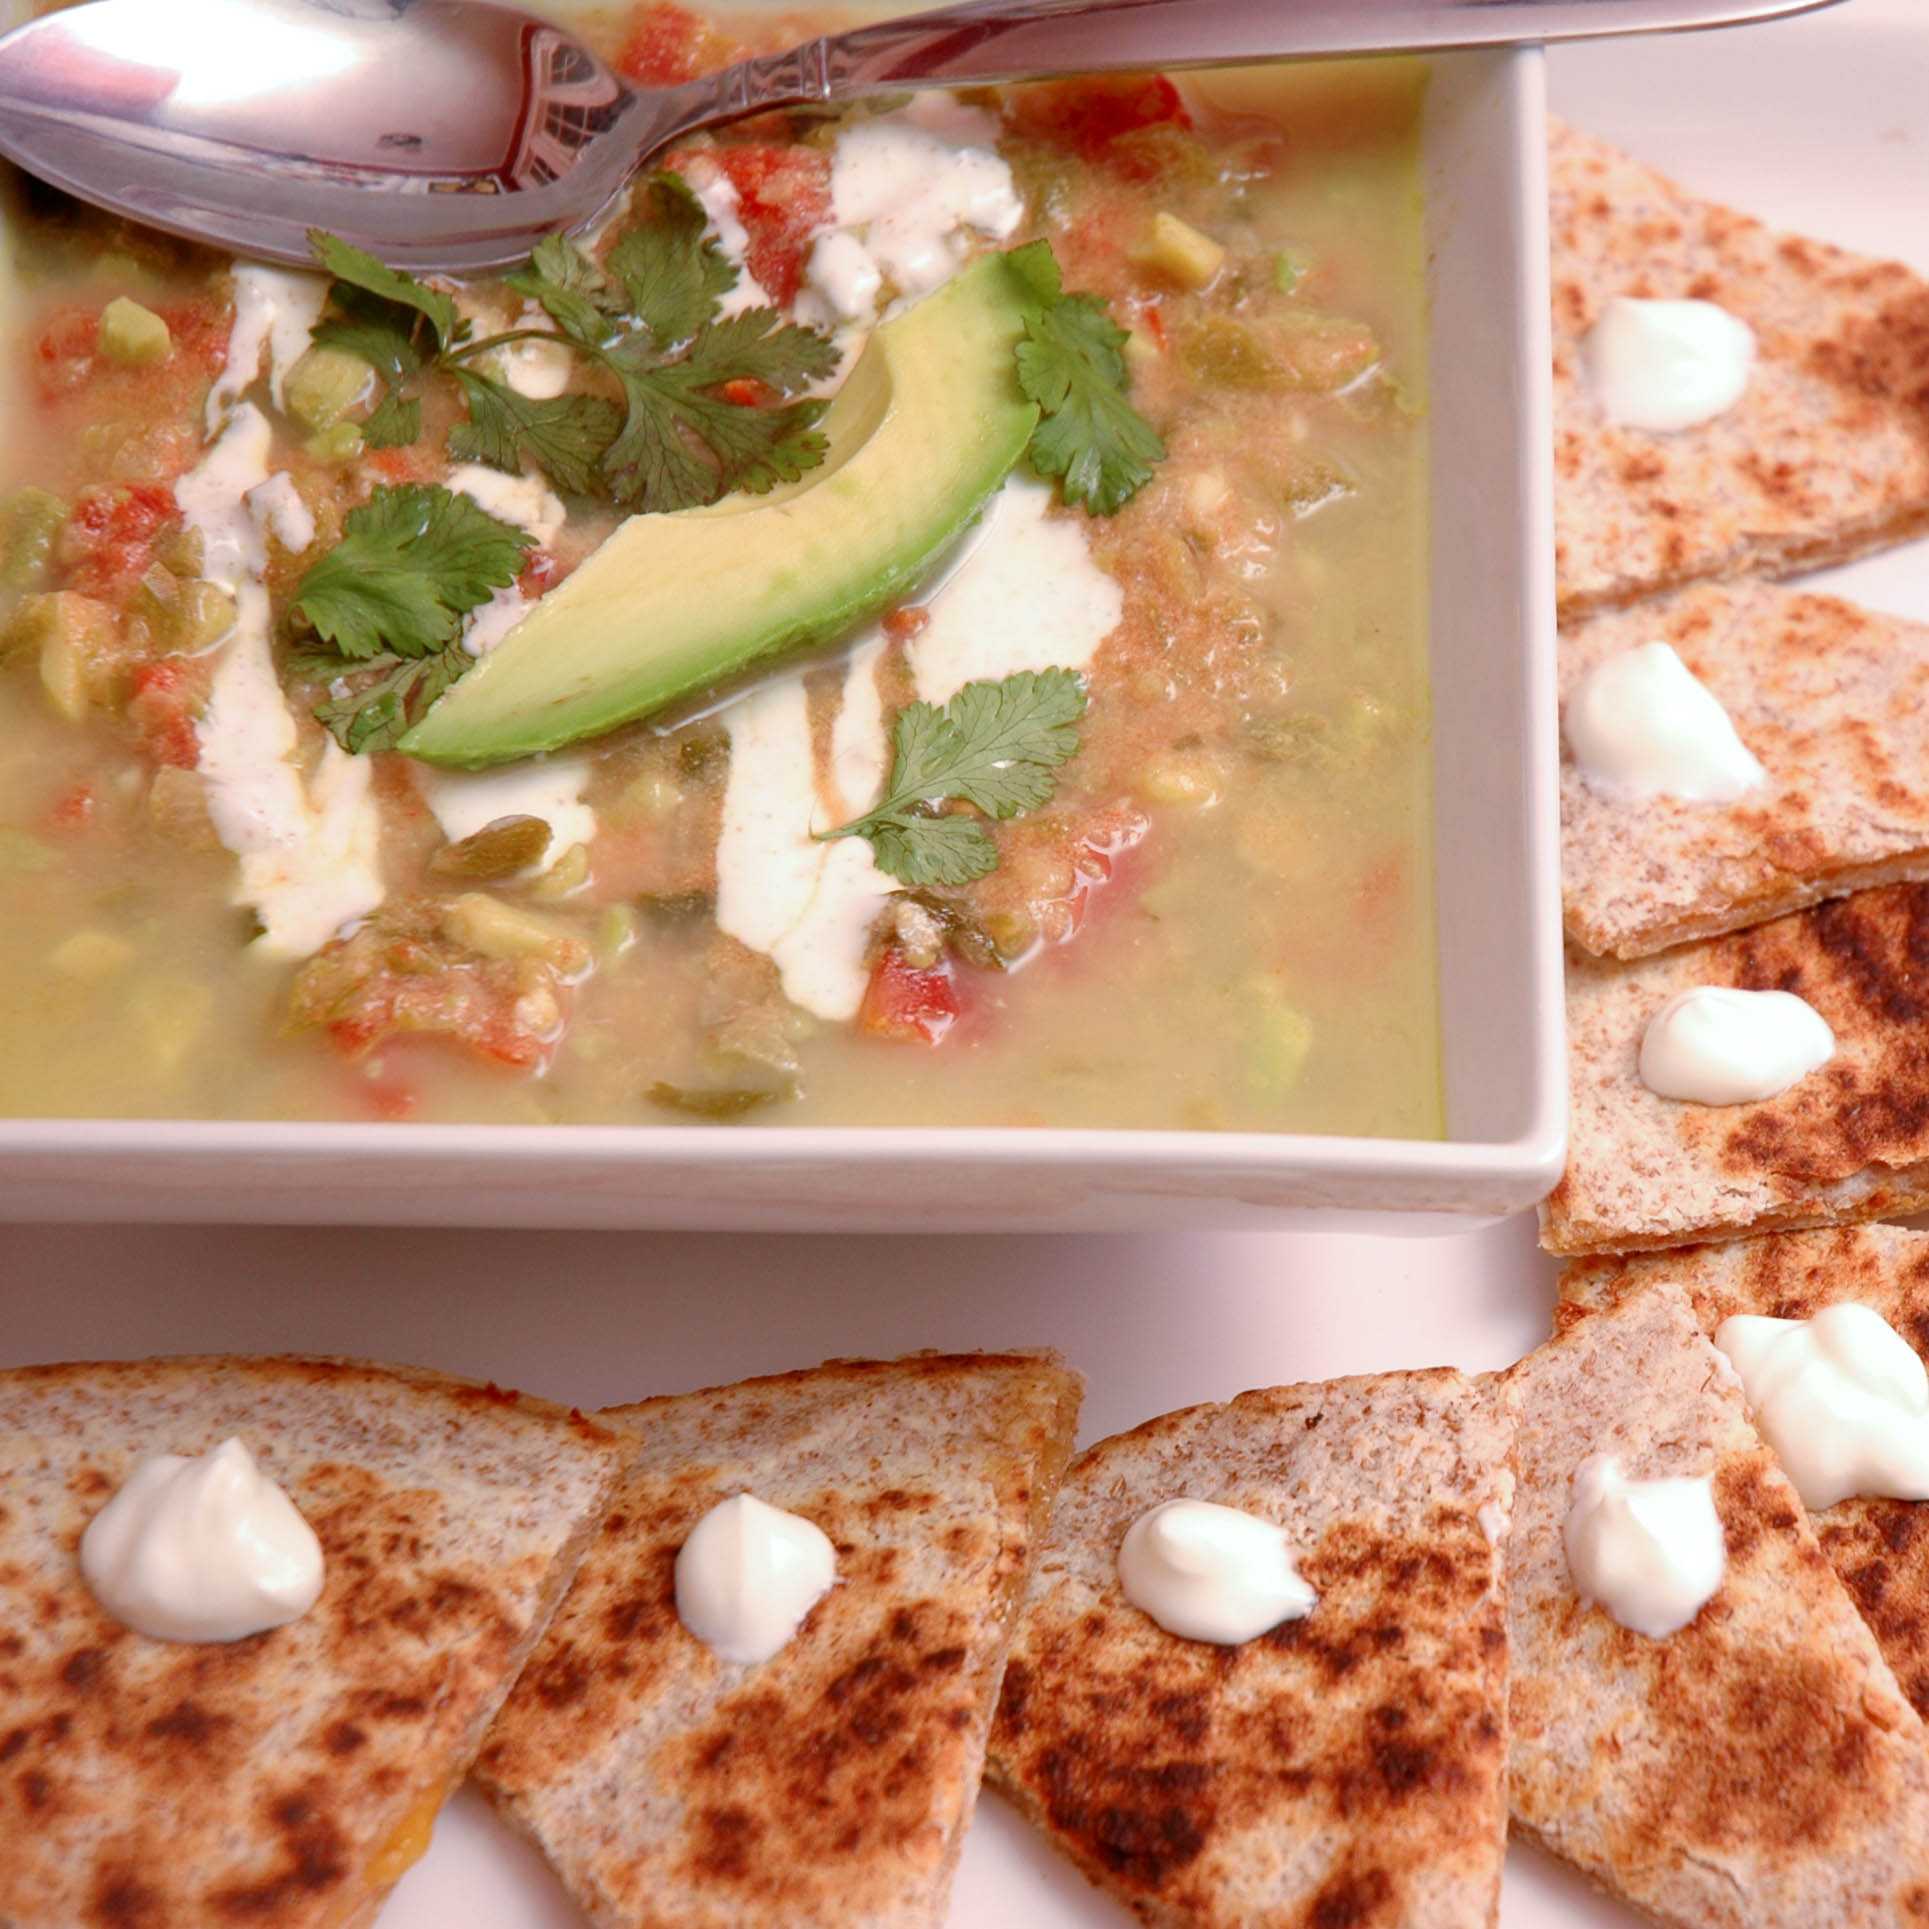 jalapeno soup with quesadillas